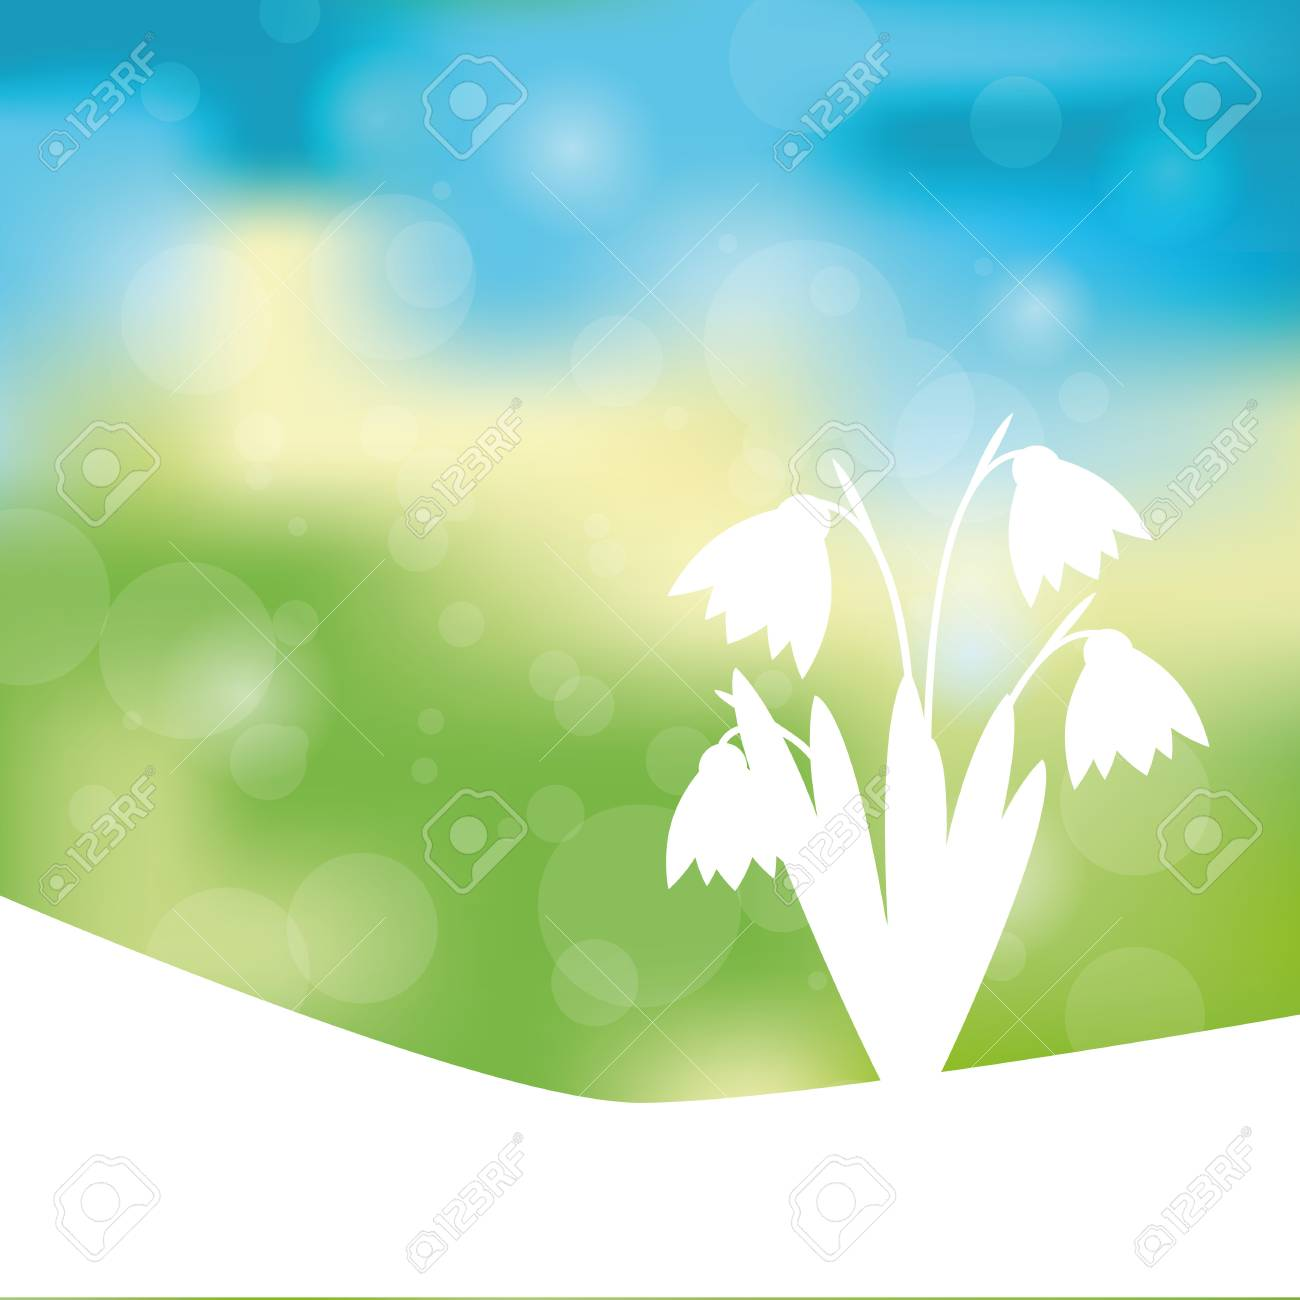 Green, blue and yellow spring with sunlight Stock Vector - 24913964